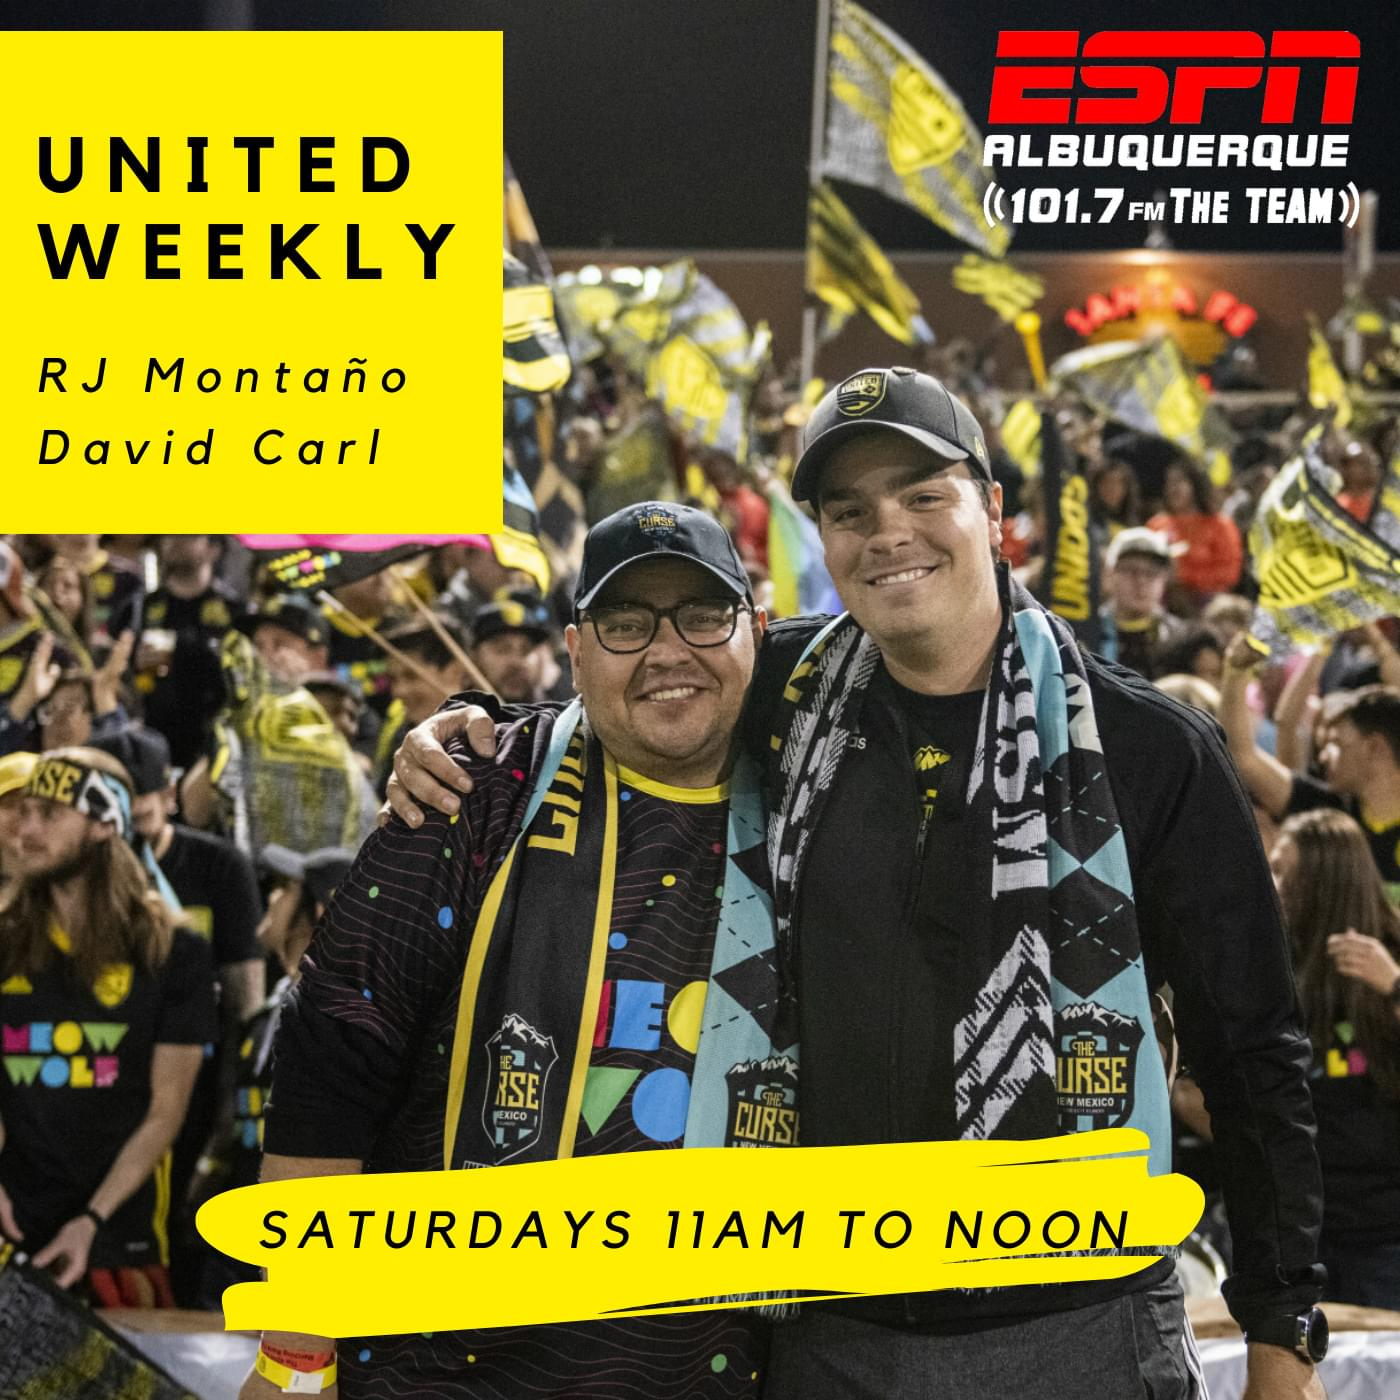 United Weekly with RJ Montaño and David Carl